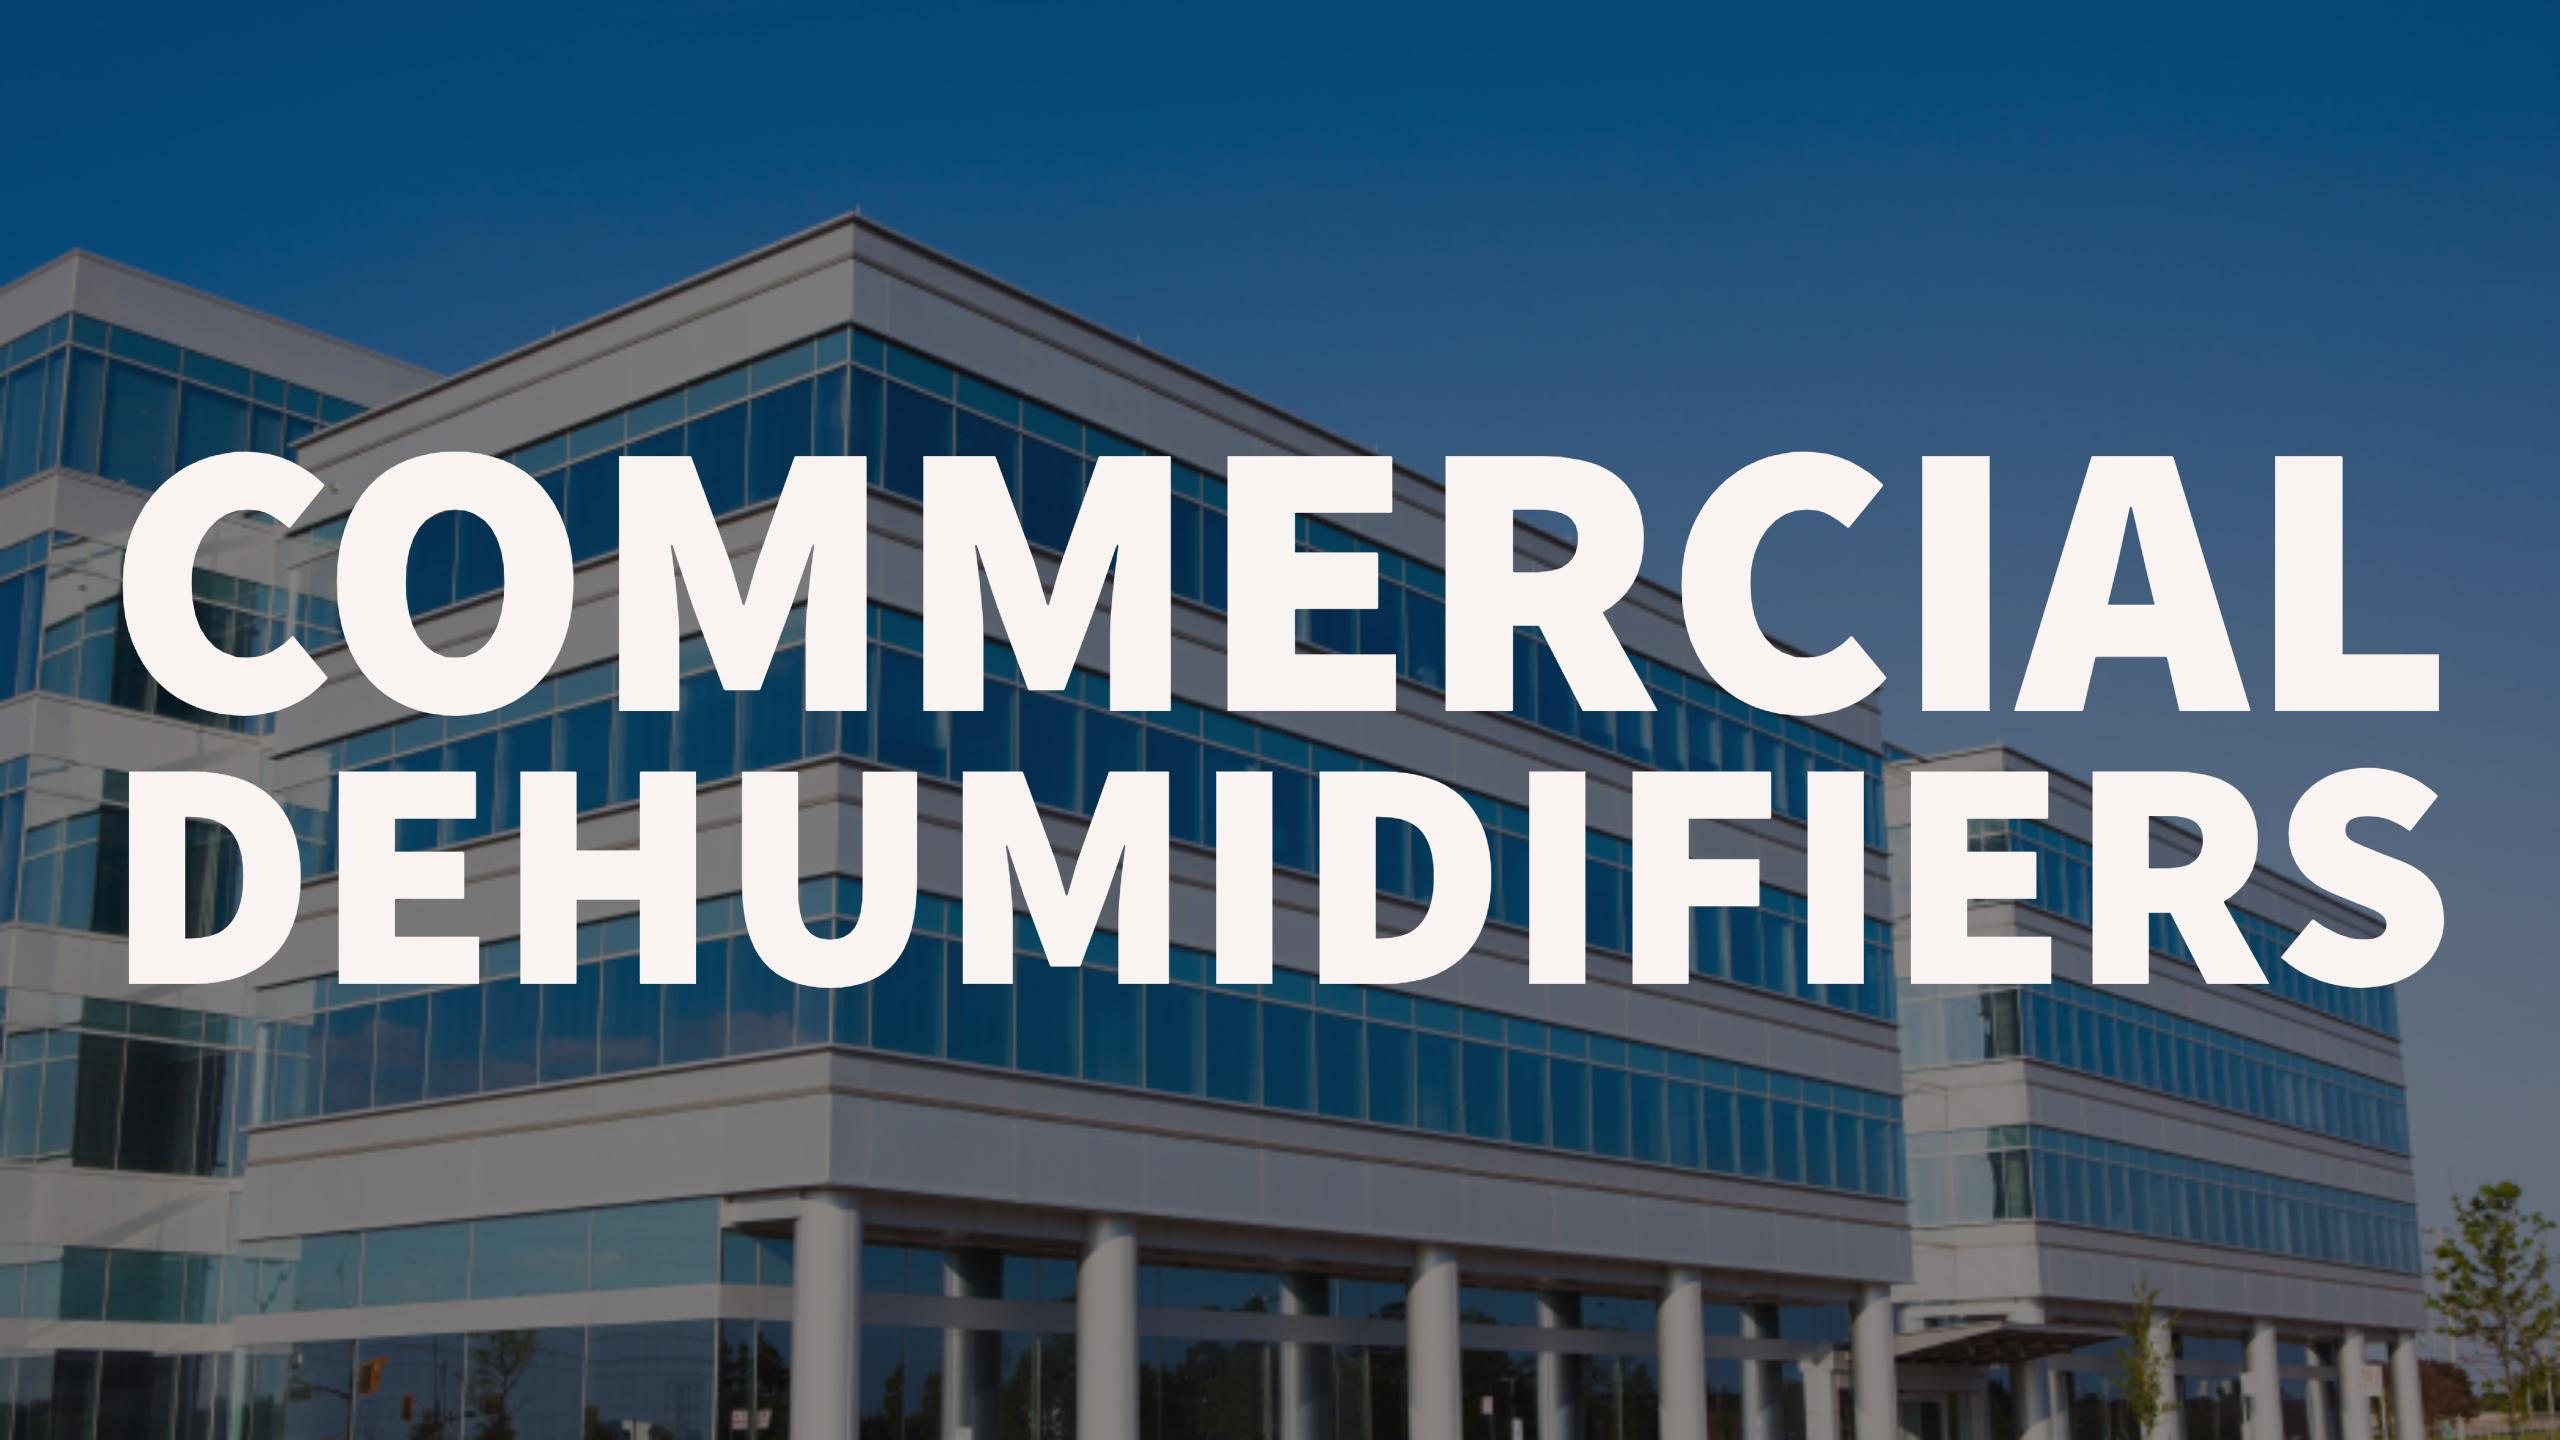 dehumidifiers in commercial space